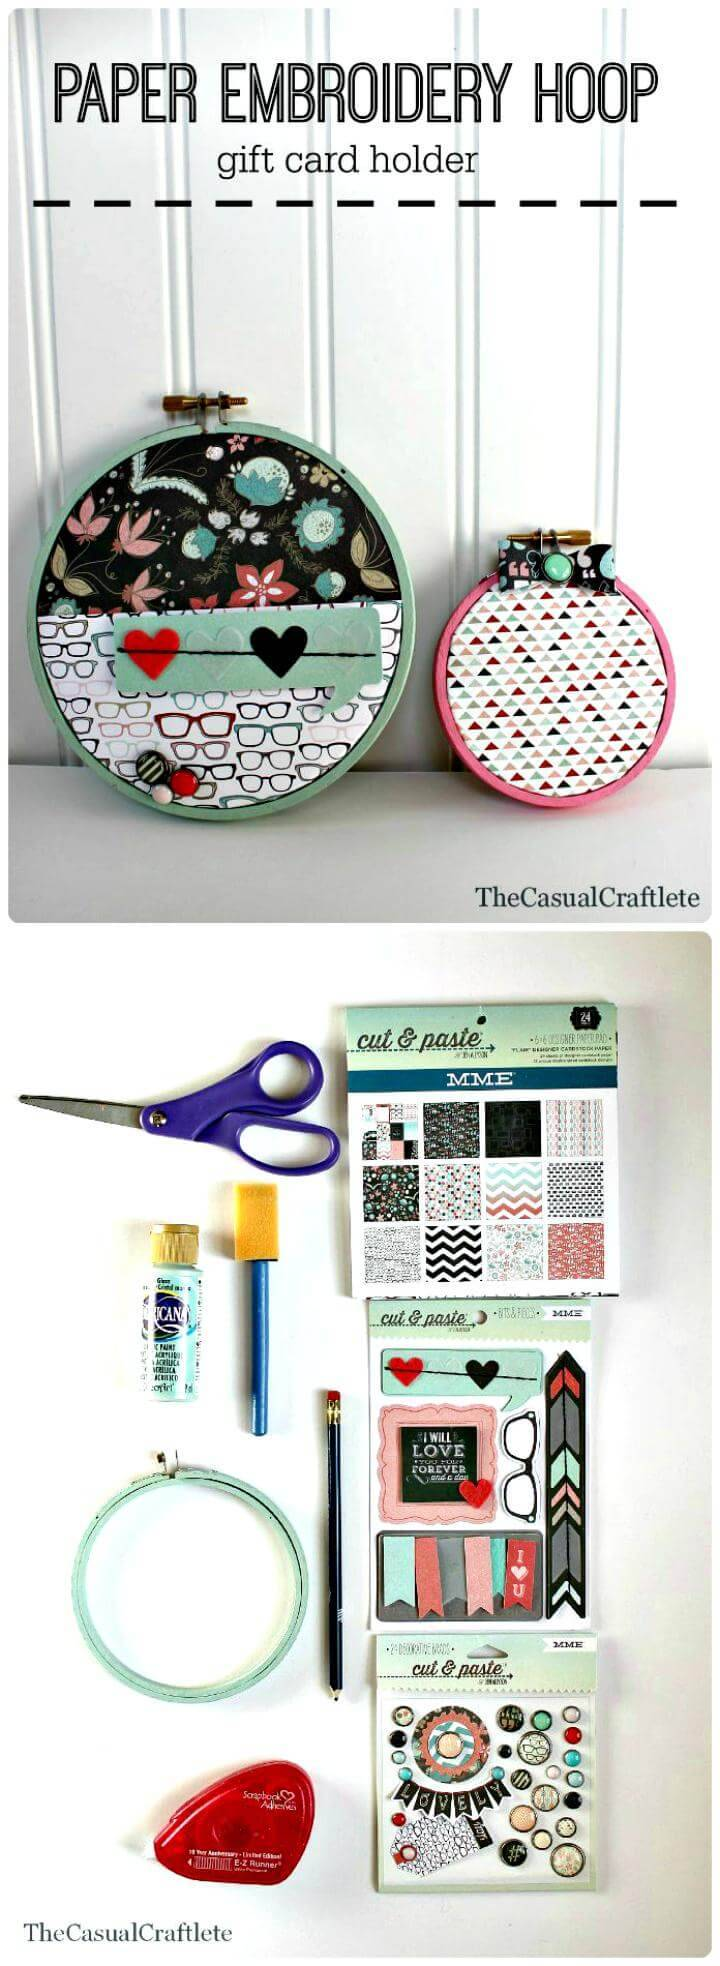 easy DIY paper embroidery hoop gift card holder